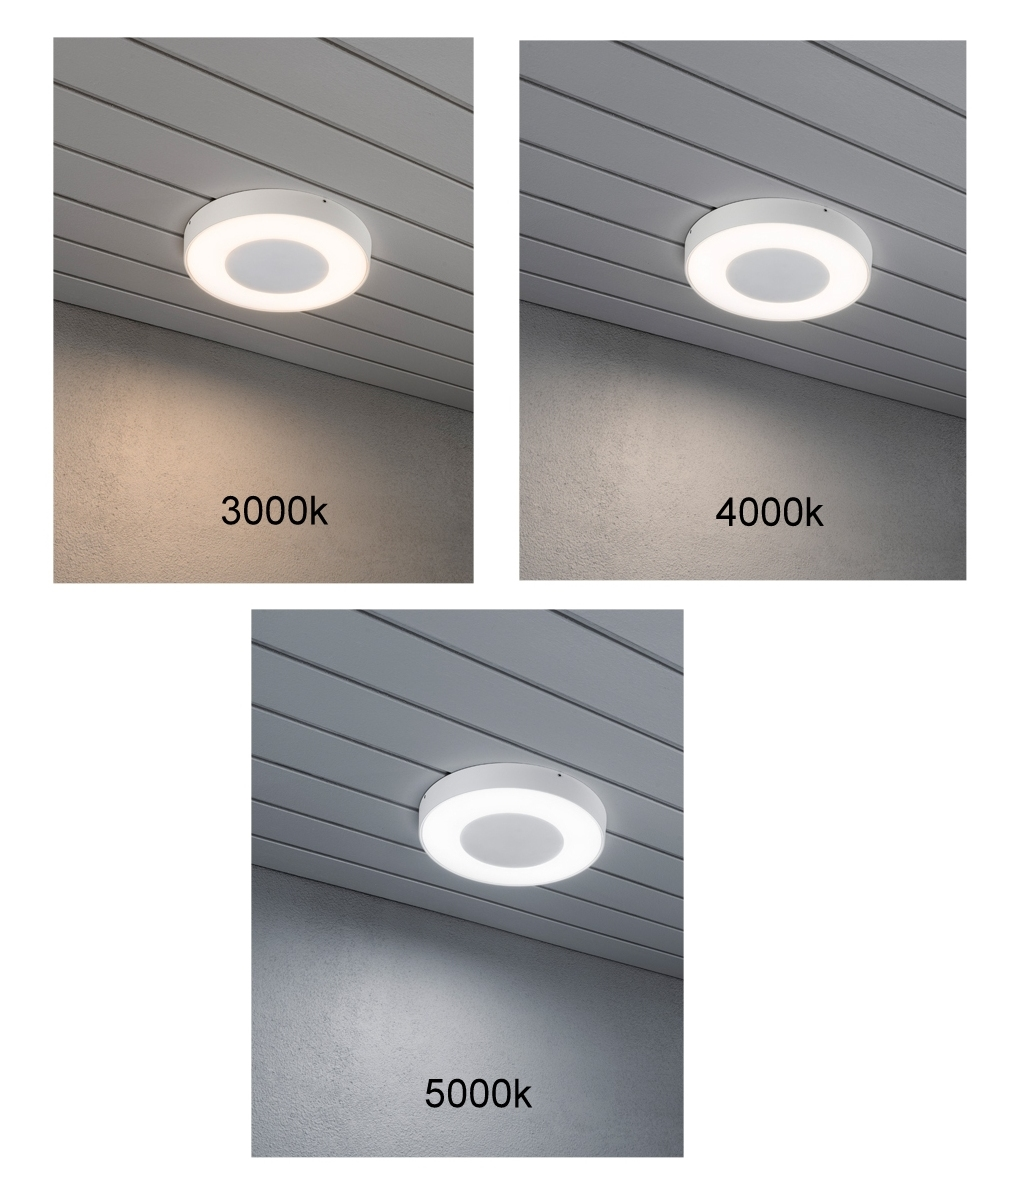 Solar Wall Lights Screwfix : LED ceiling or wall light for exterior use with a remote control